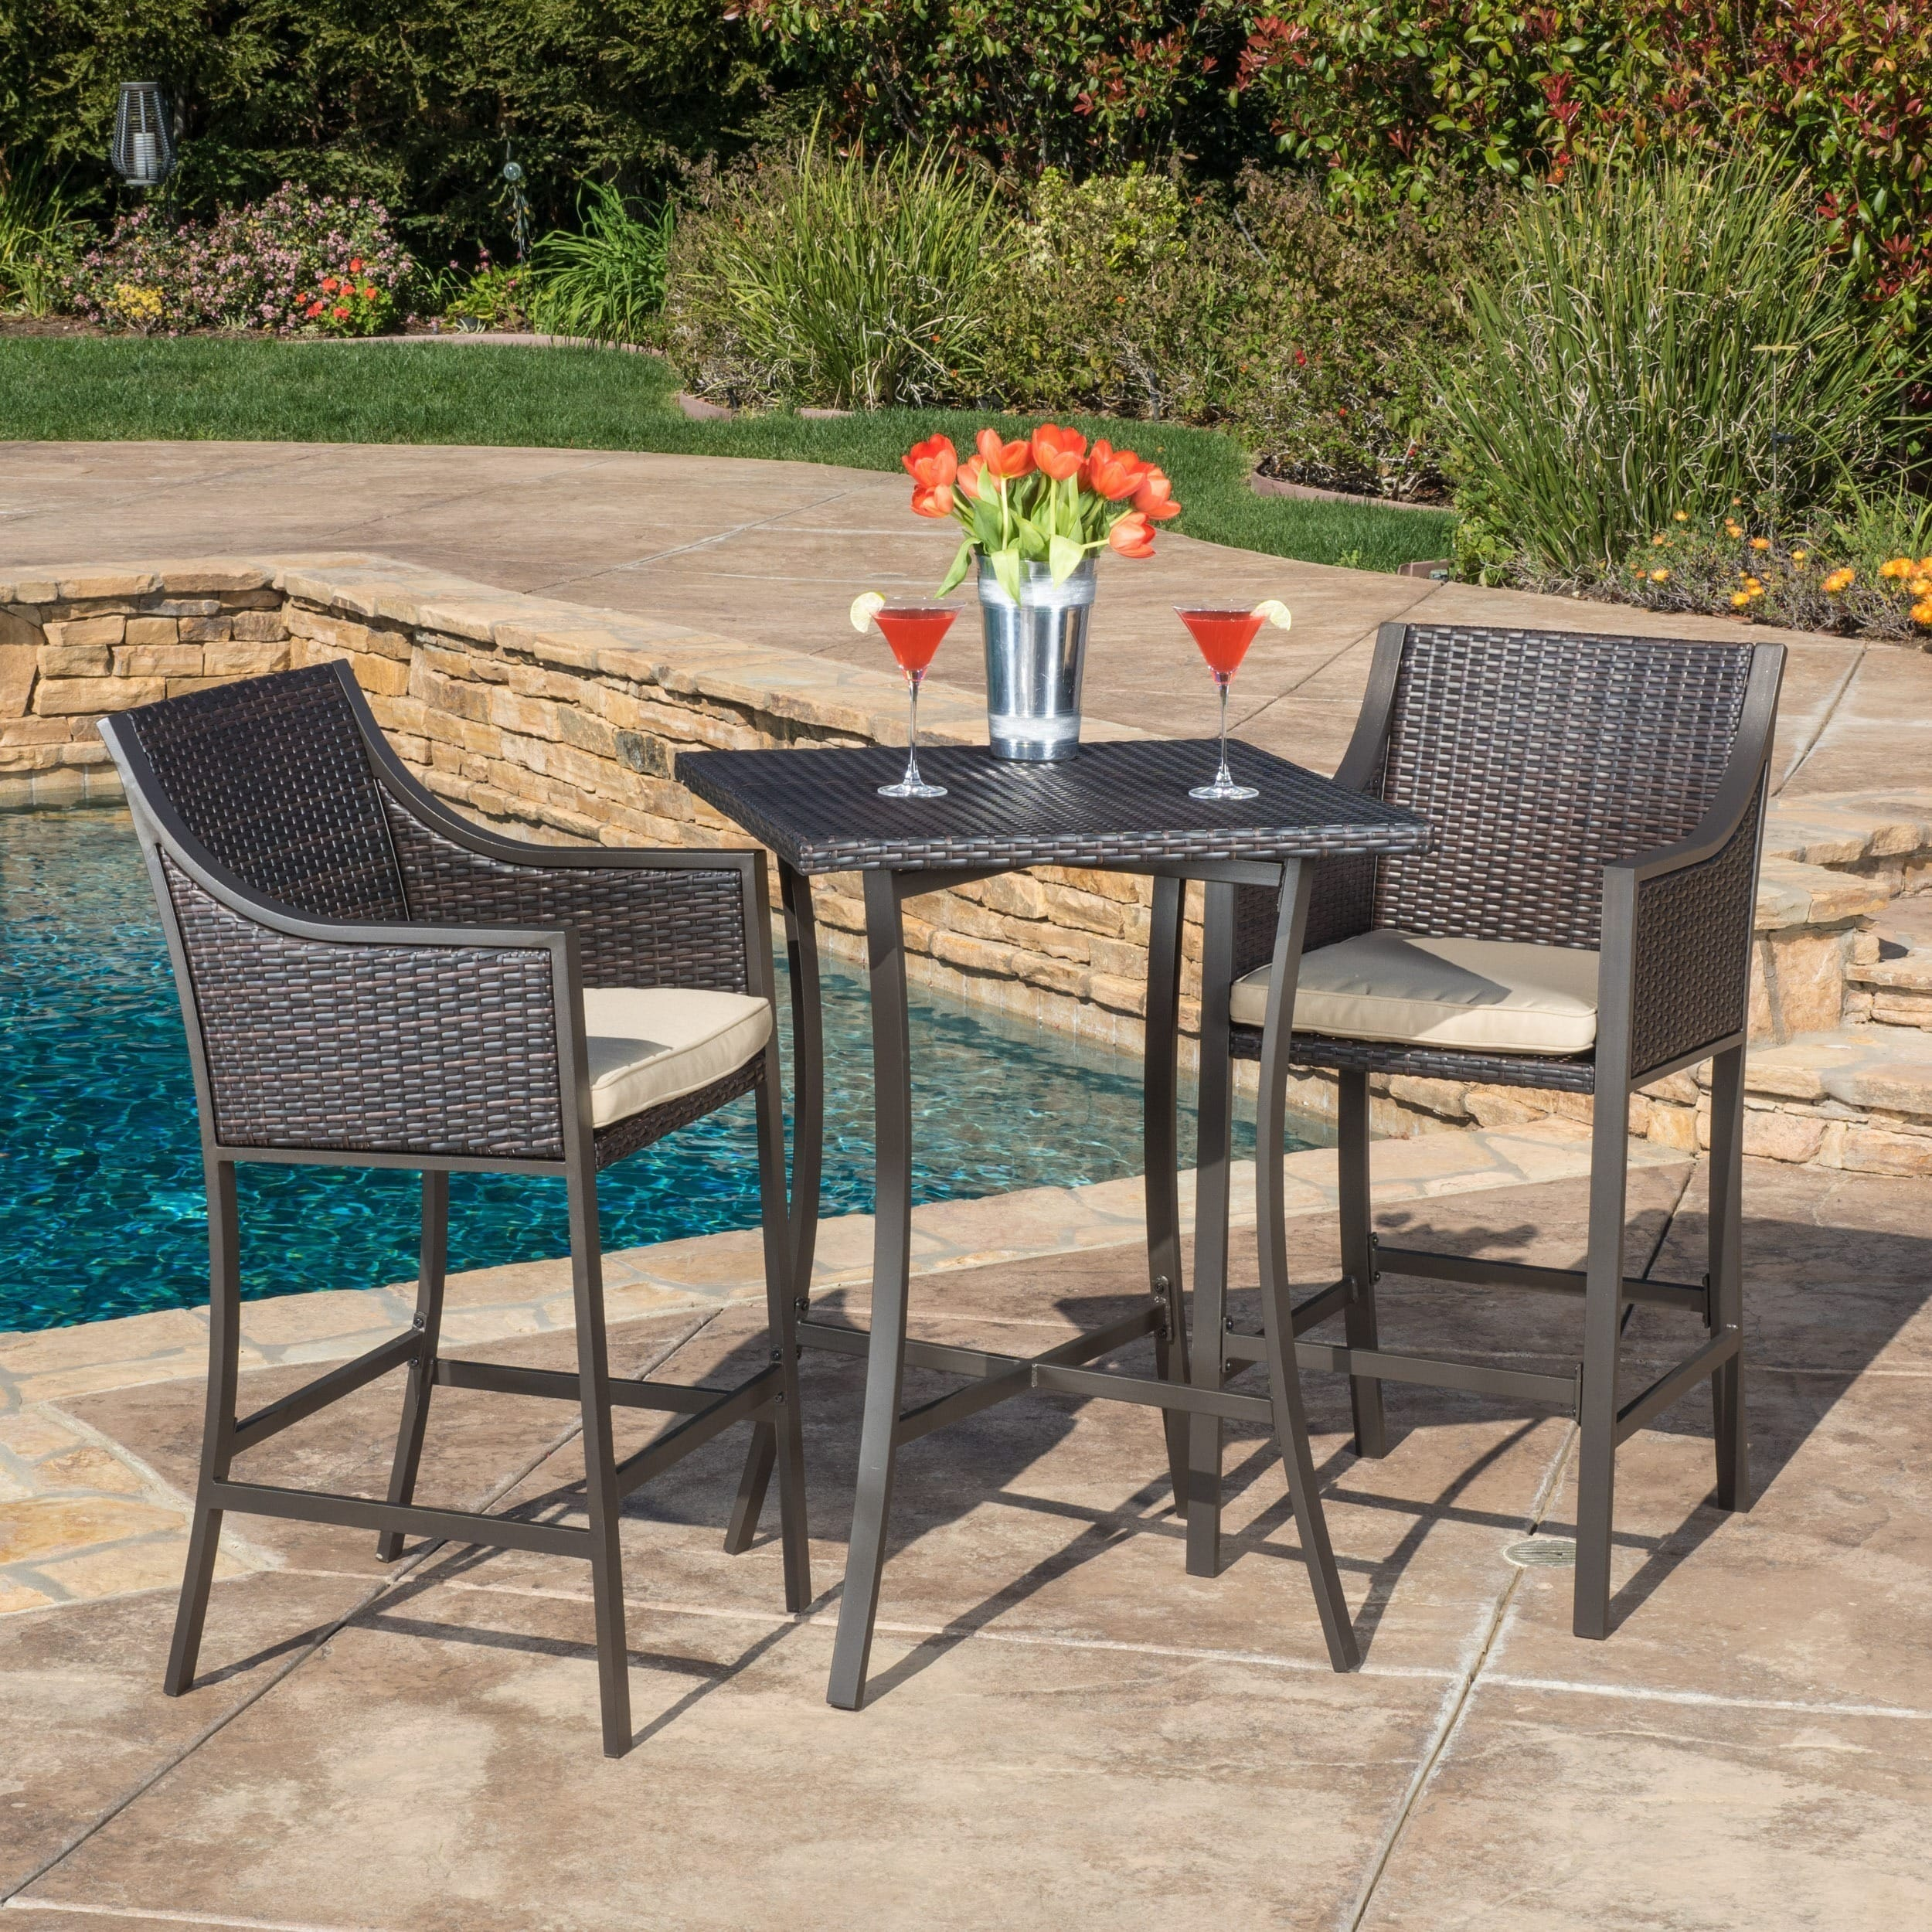 Christopher Knight Home Riga Outdoor 3-piece Wicker Bistro Bar Set with Cushion by